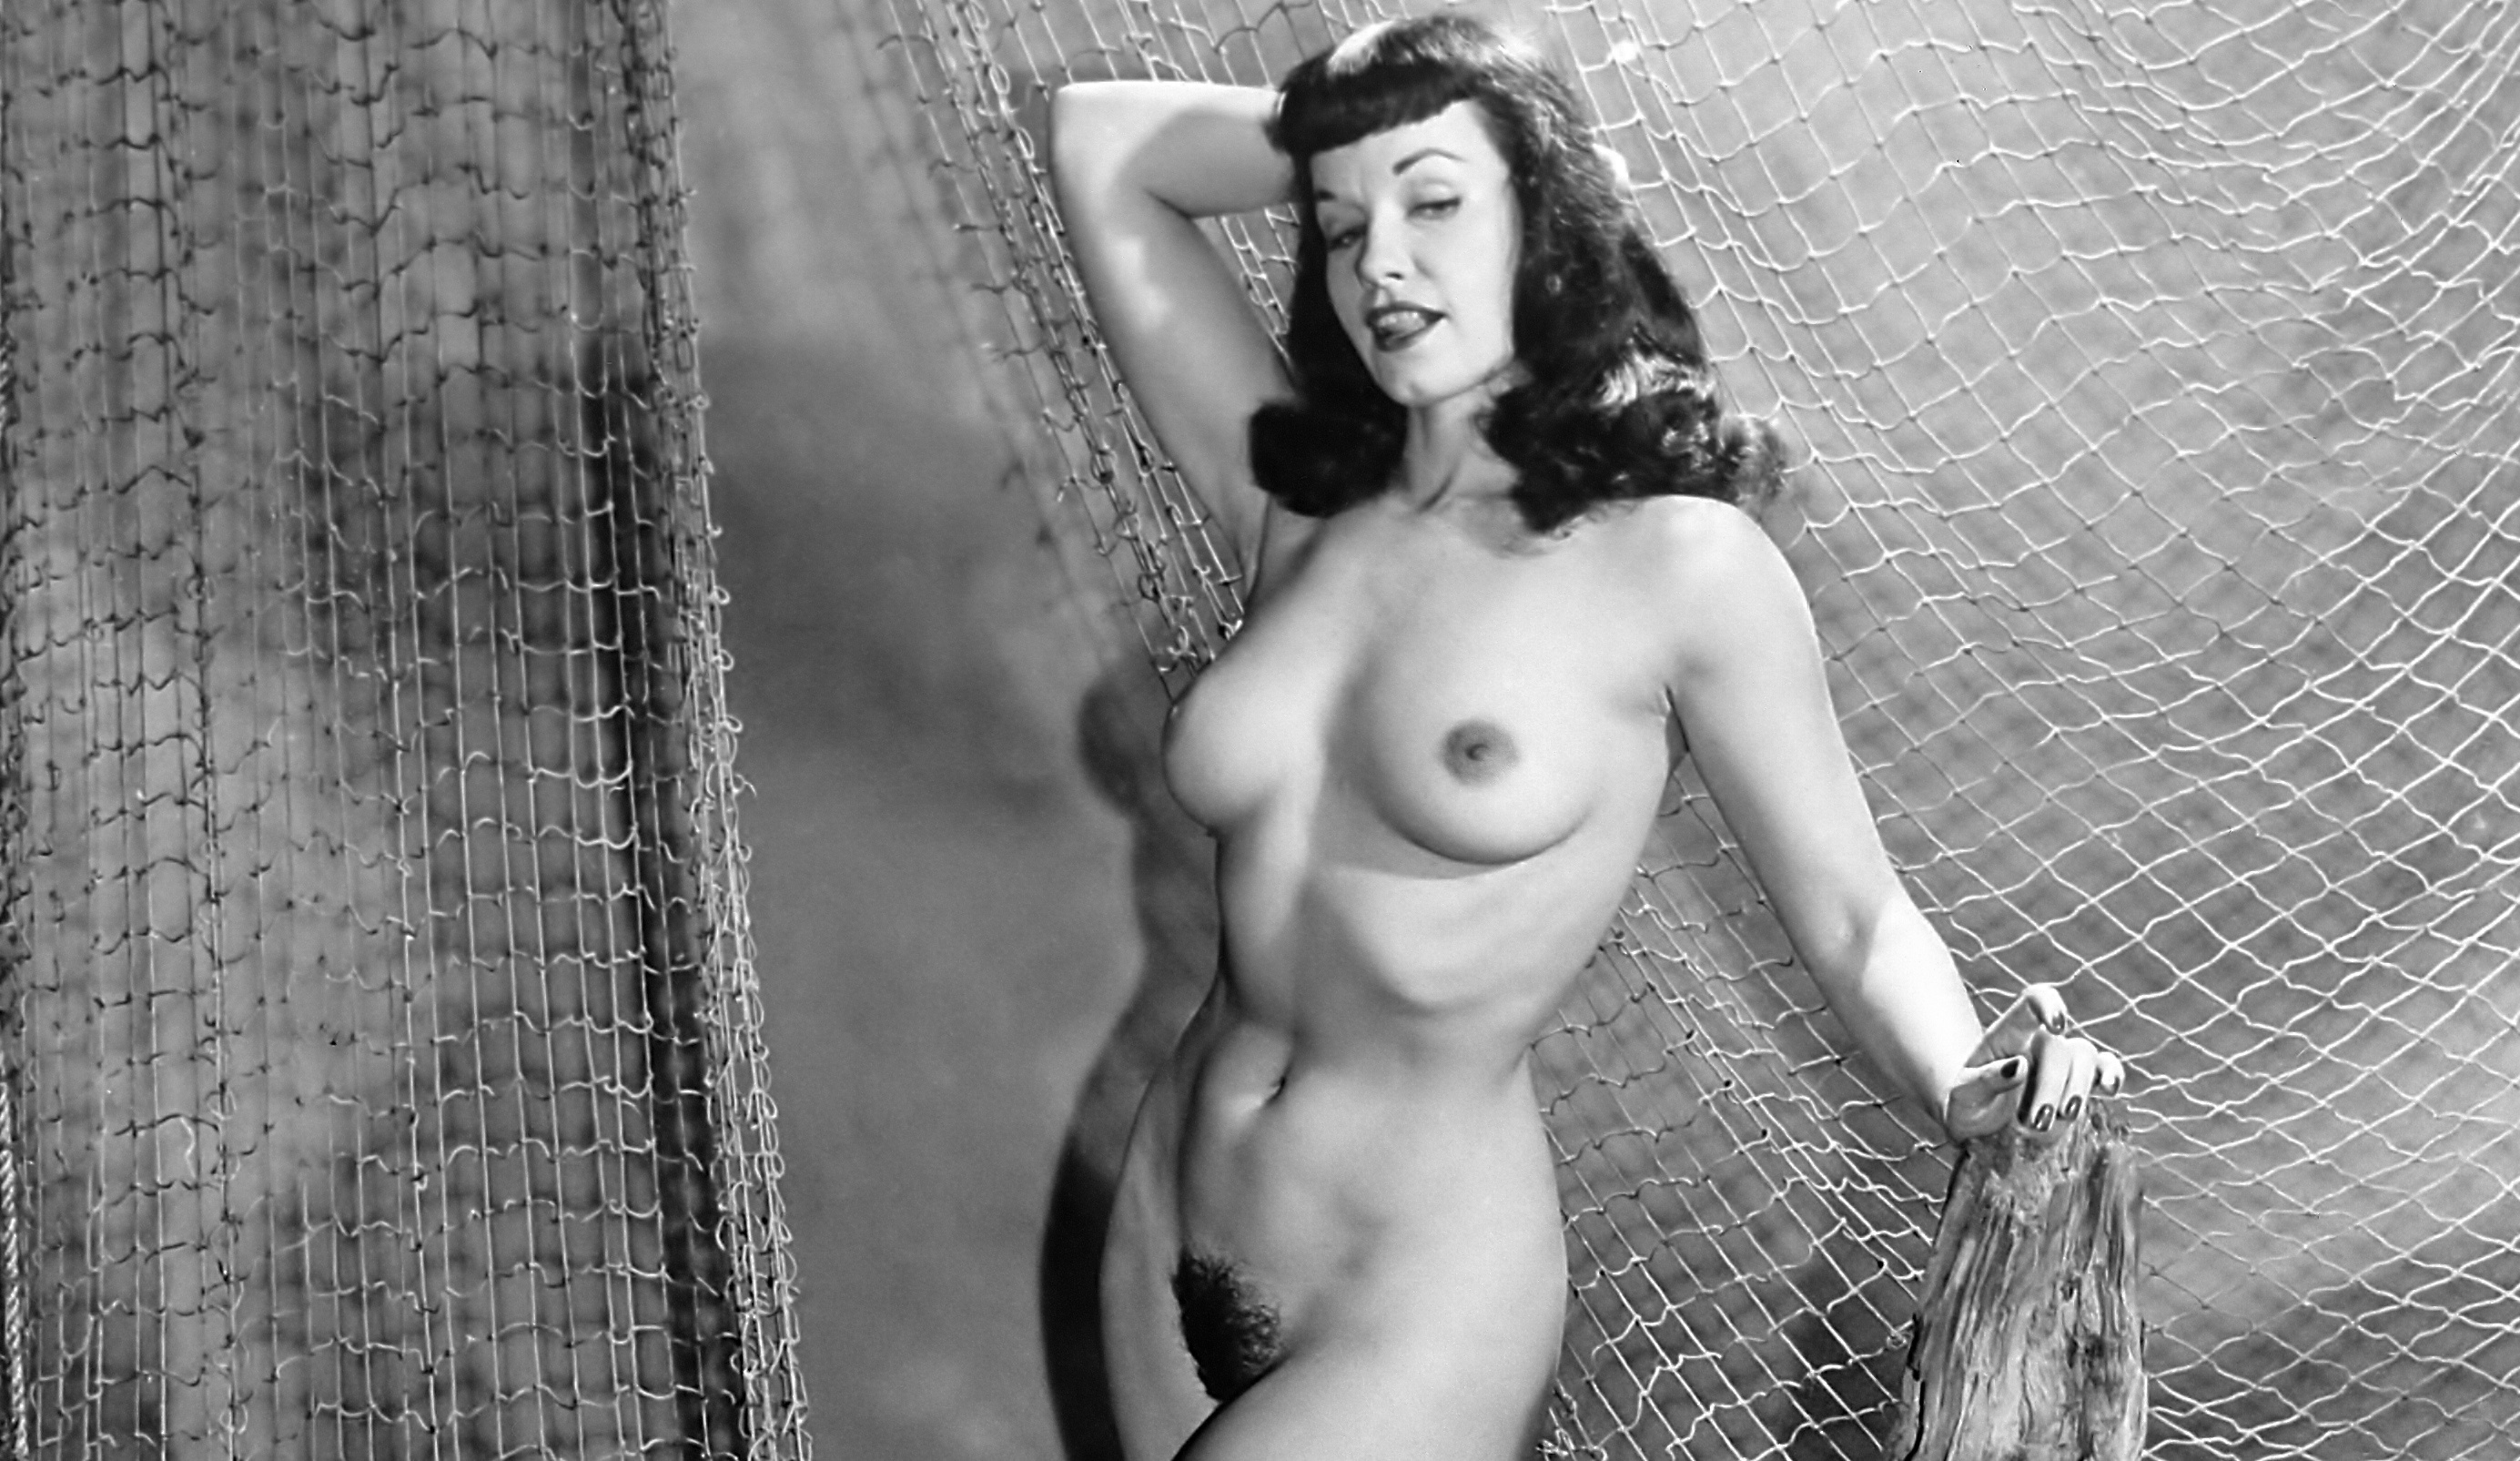 Rare bettie page nude sorry, that